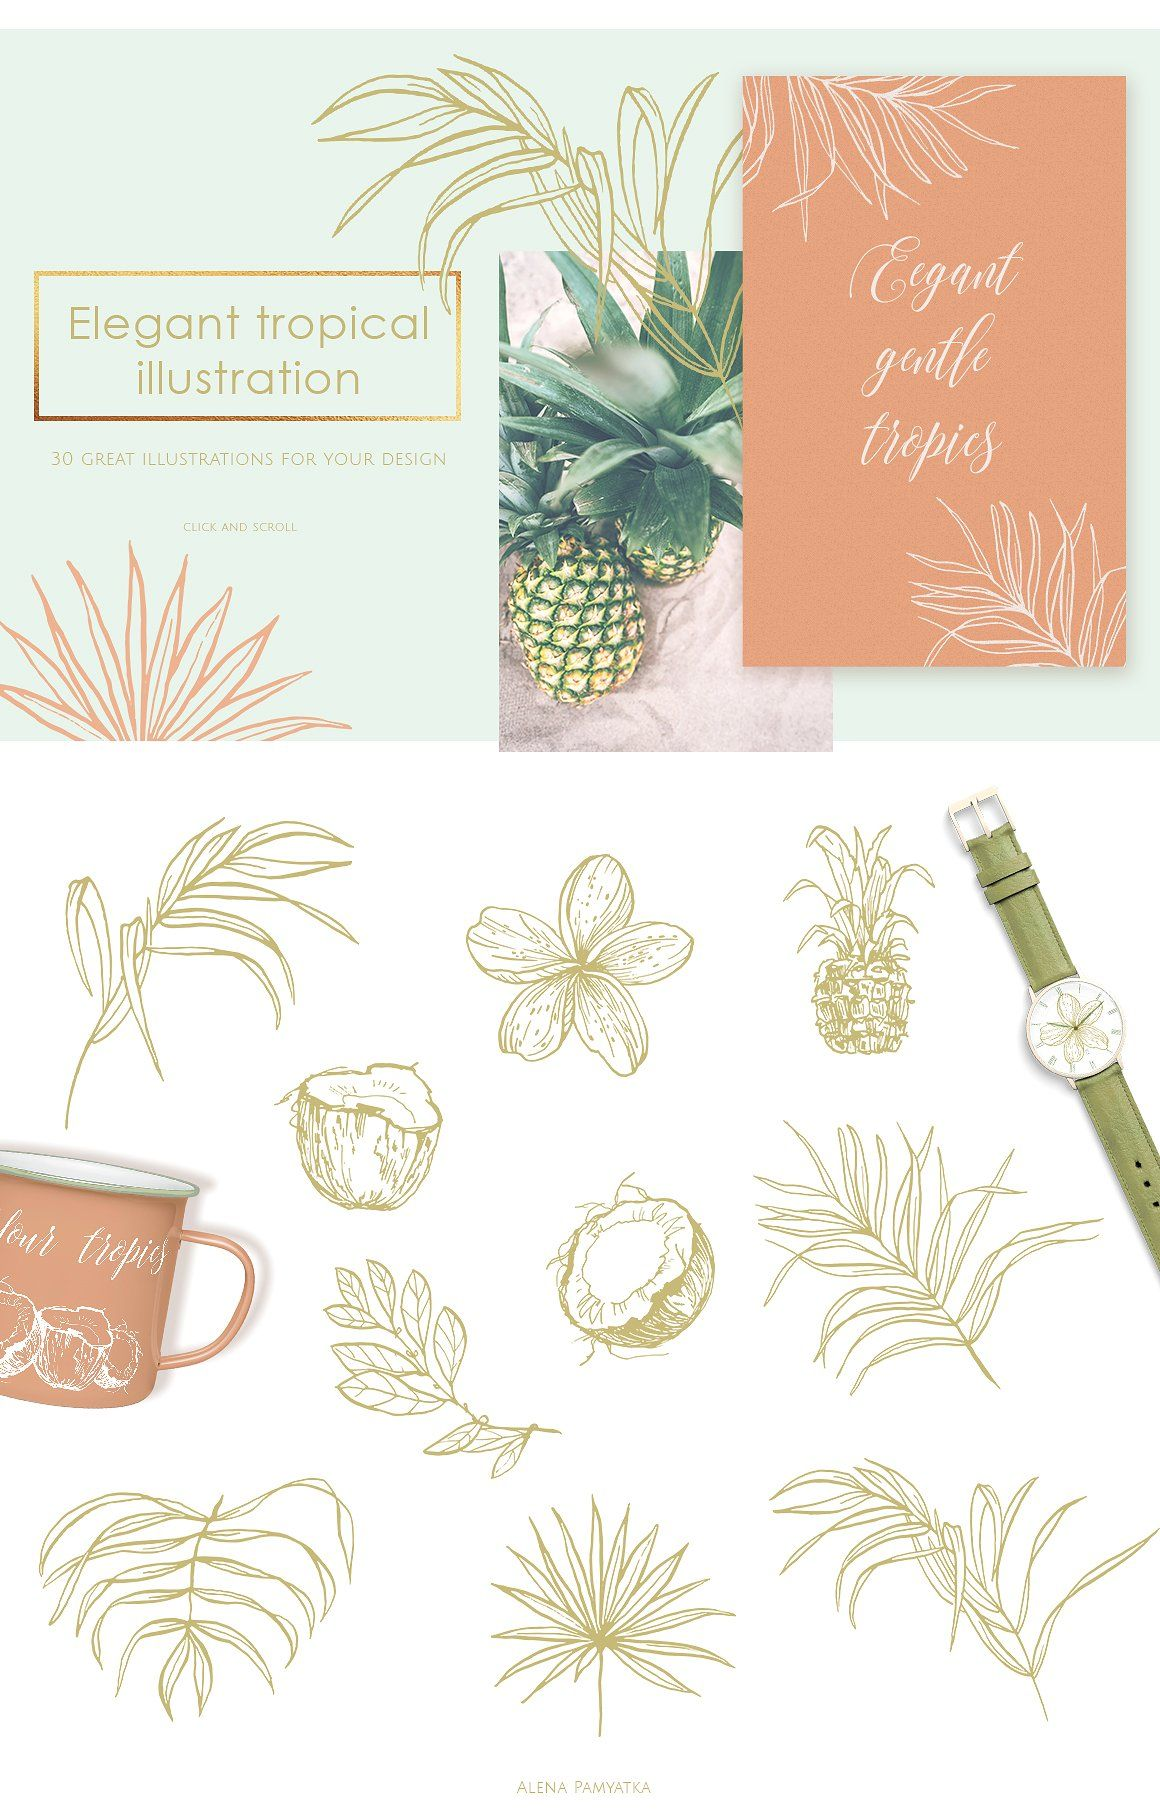 Tropical illustrations and patterns